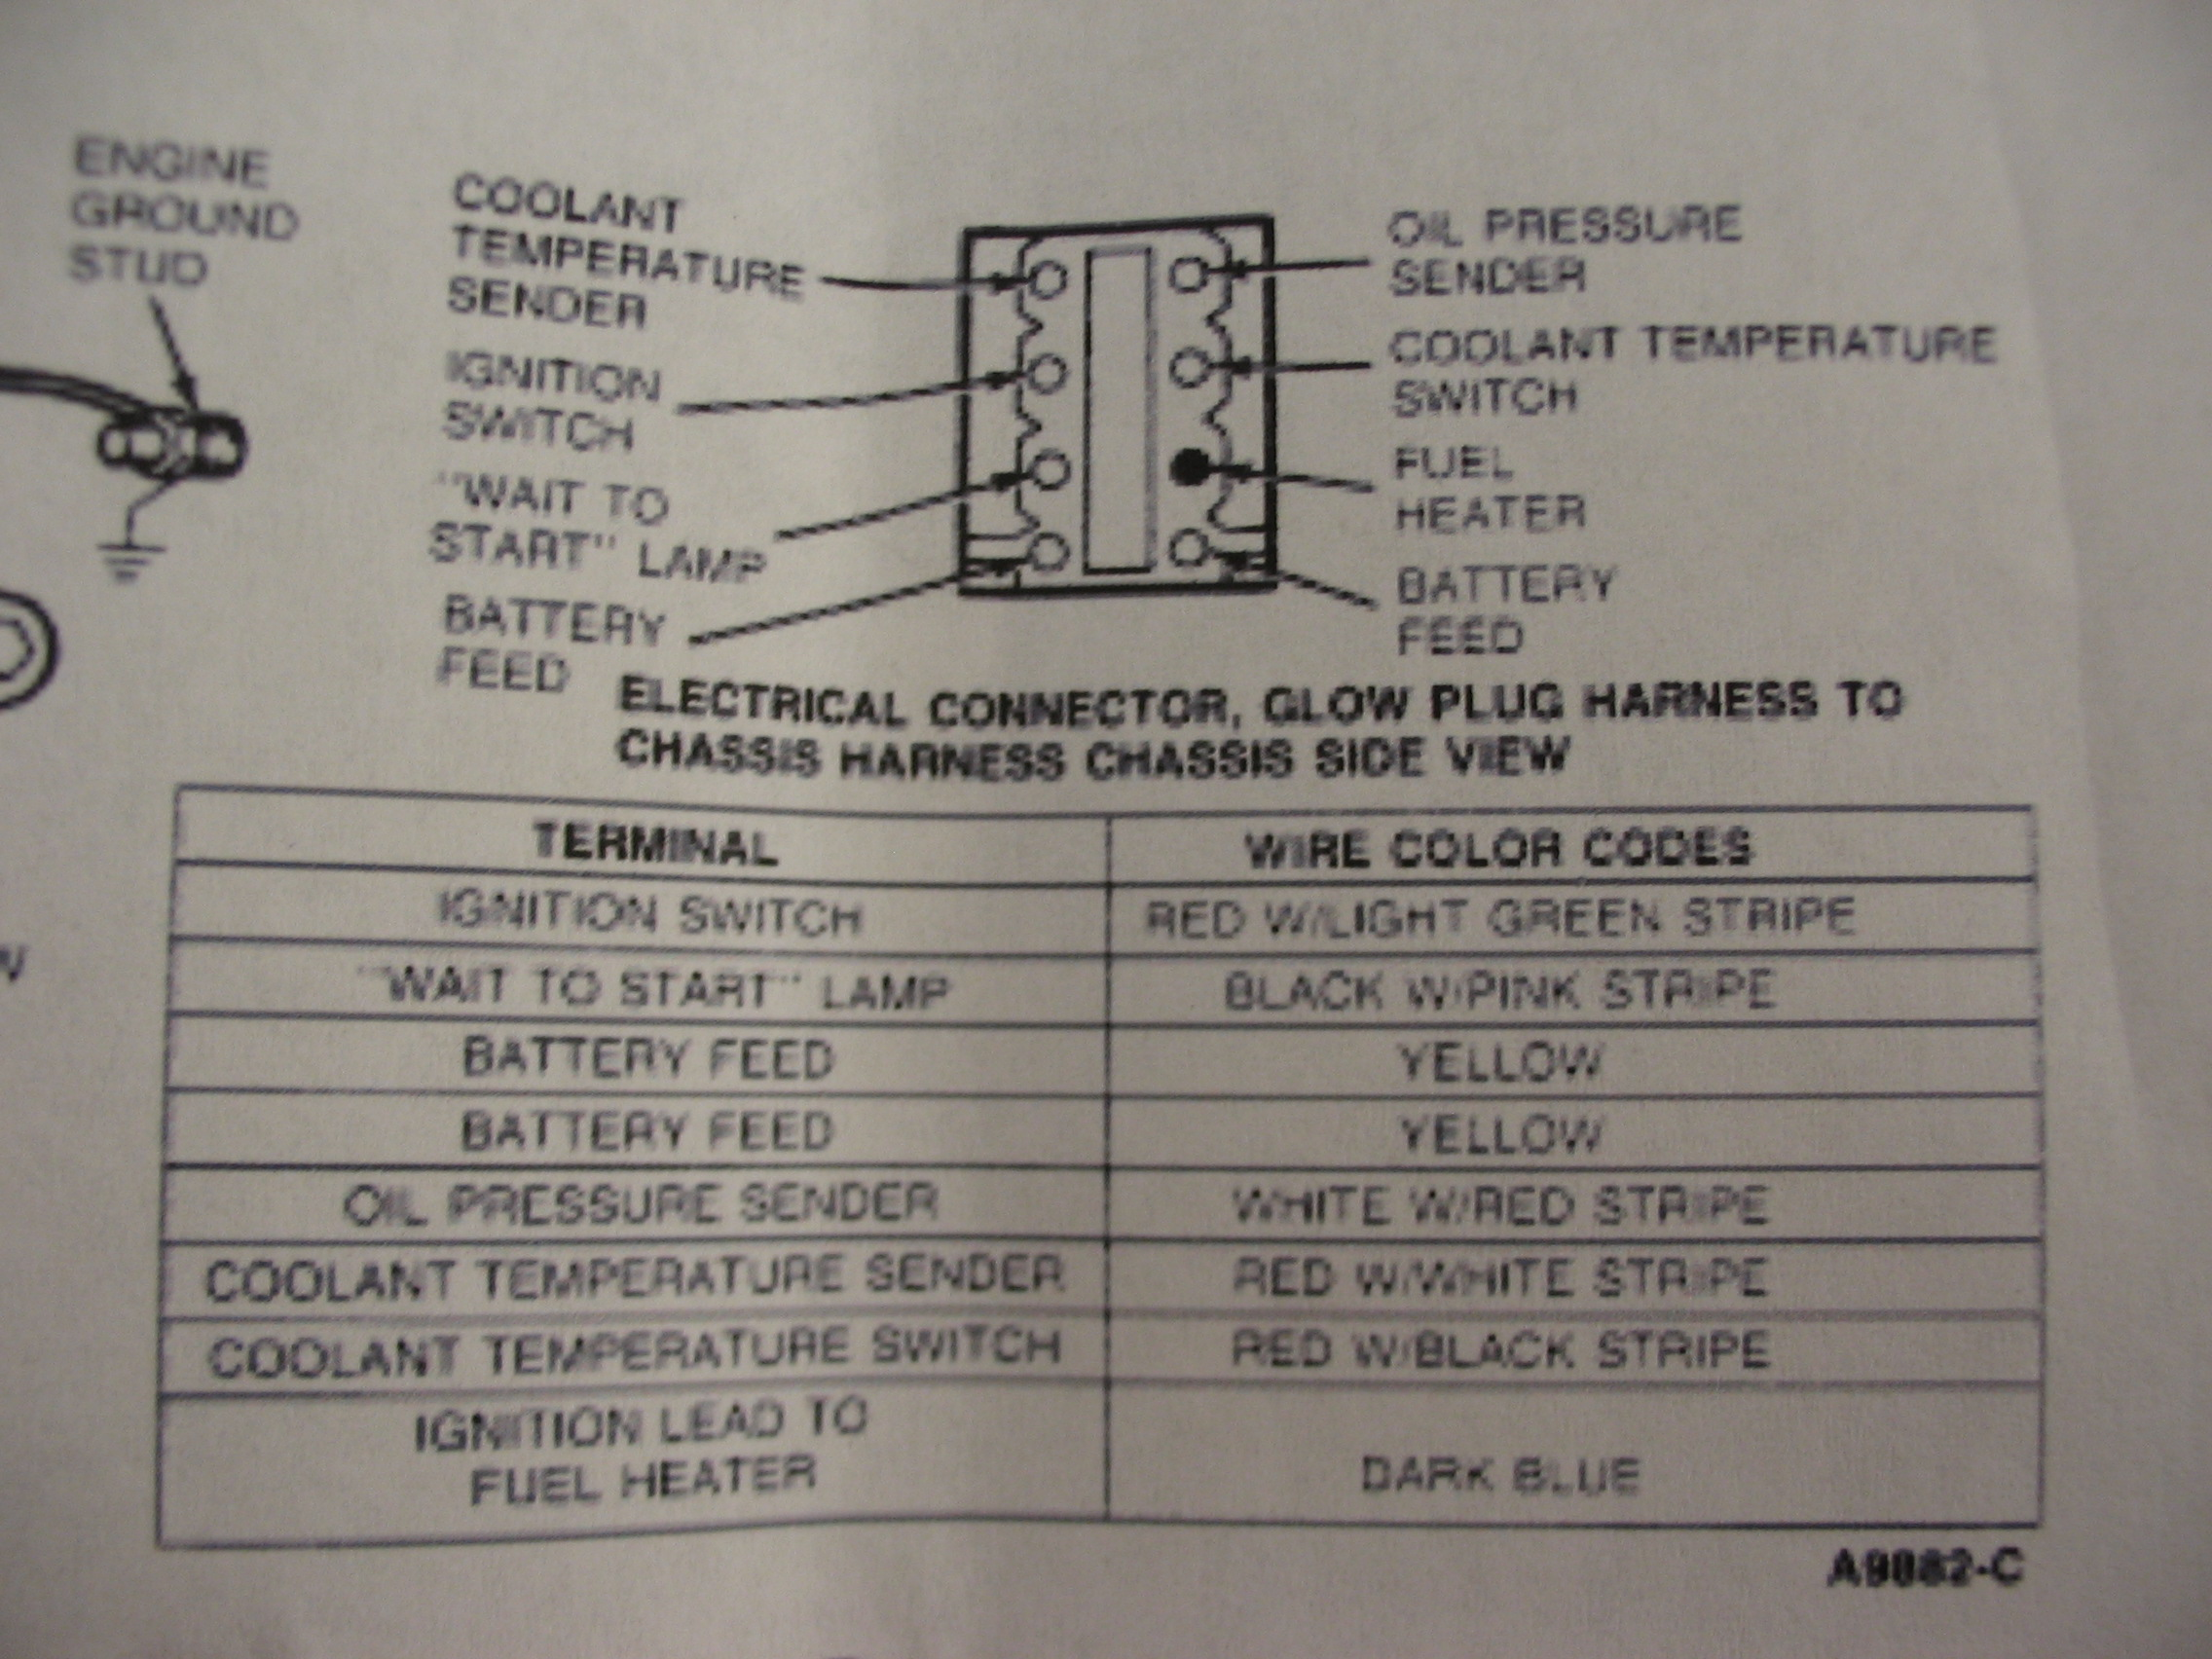 Ford Diagrams M1009 Glow Plug Wiring Diagram 91 Harness Pin Outs